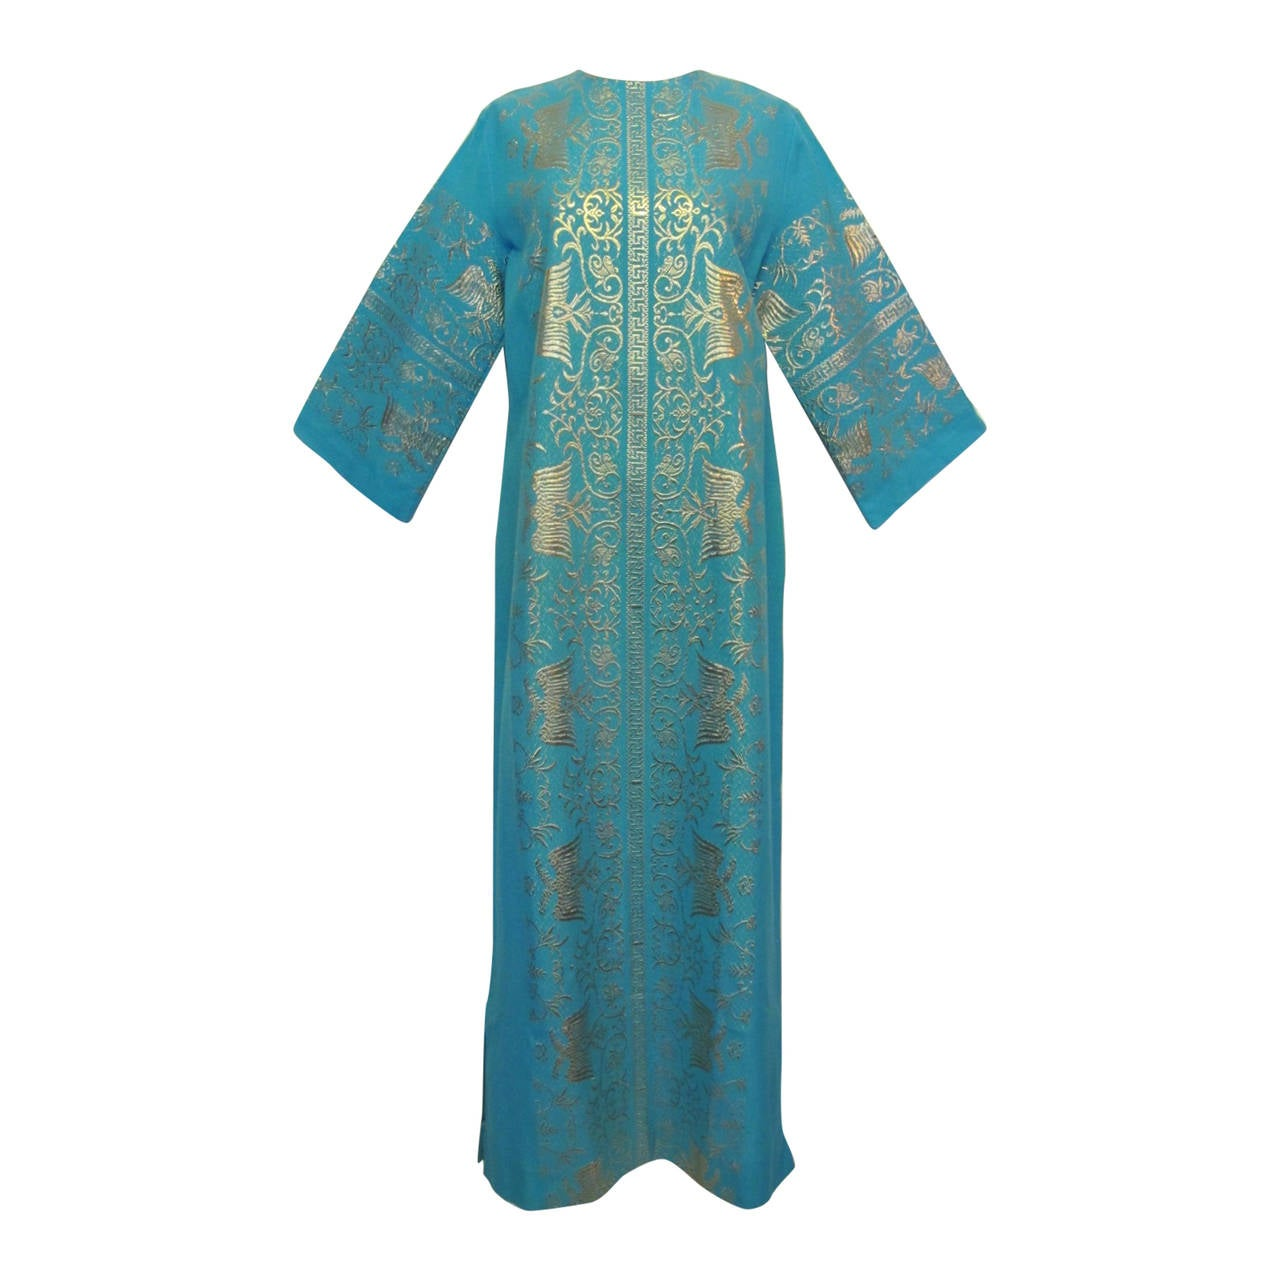 new vintage ah haracopoulos turquoise blue caftan at